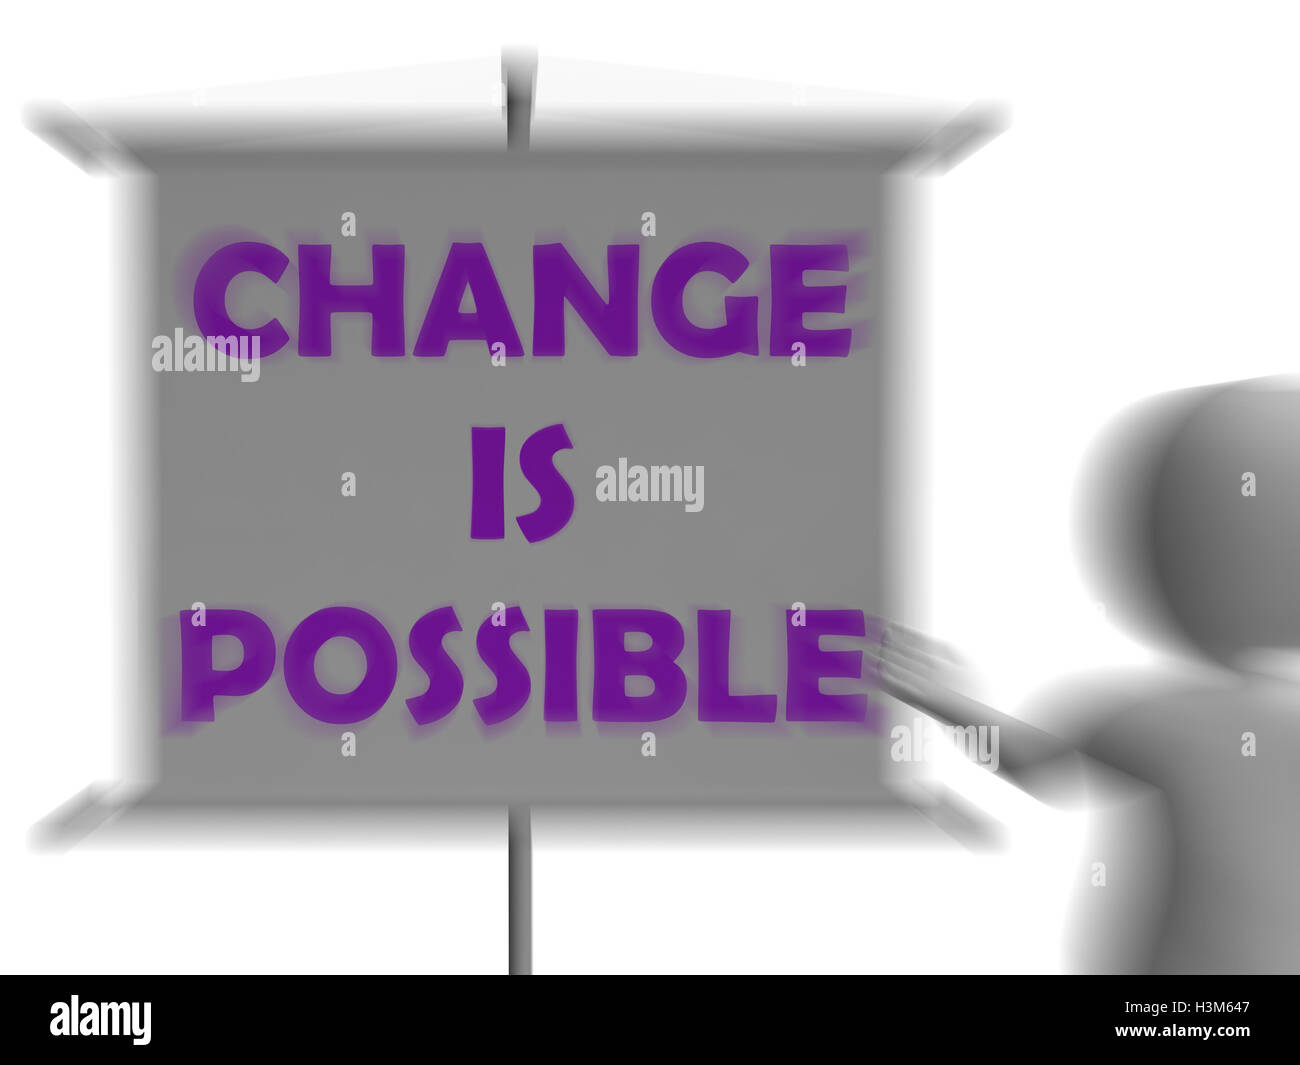 Change Is Possible Board Displays Possible Improvement - Stock Image